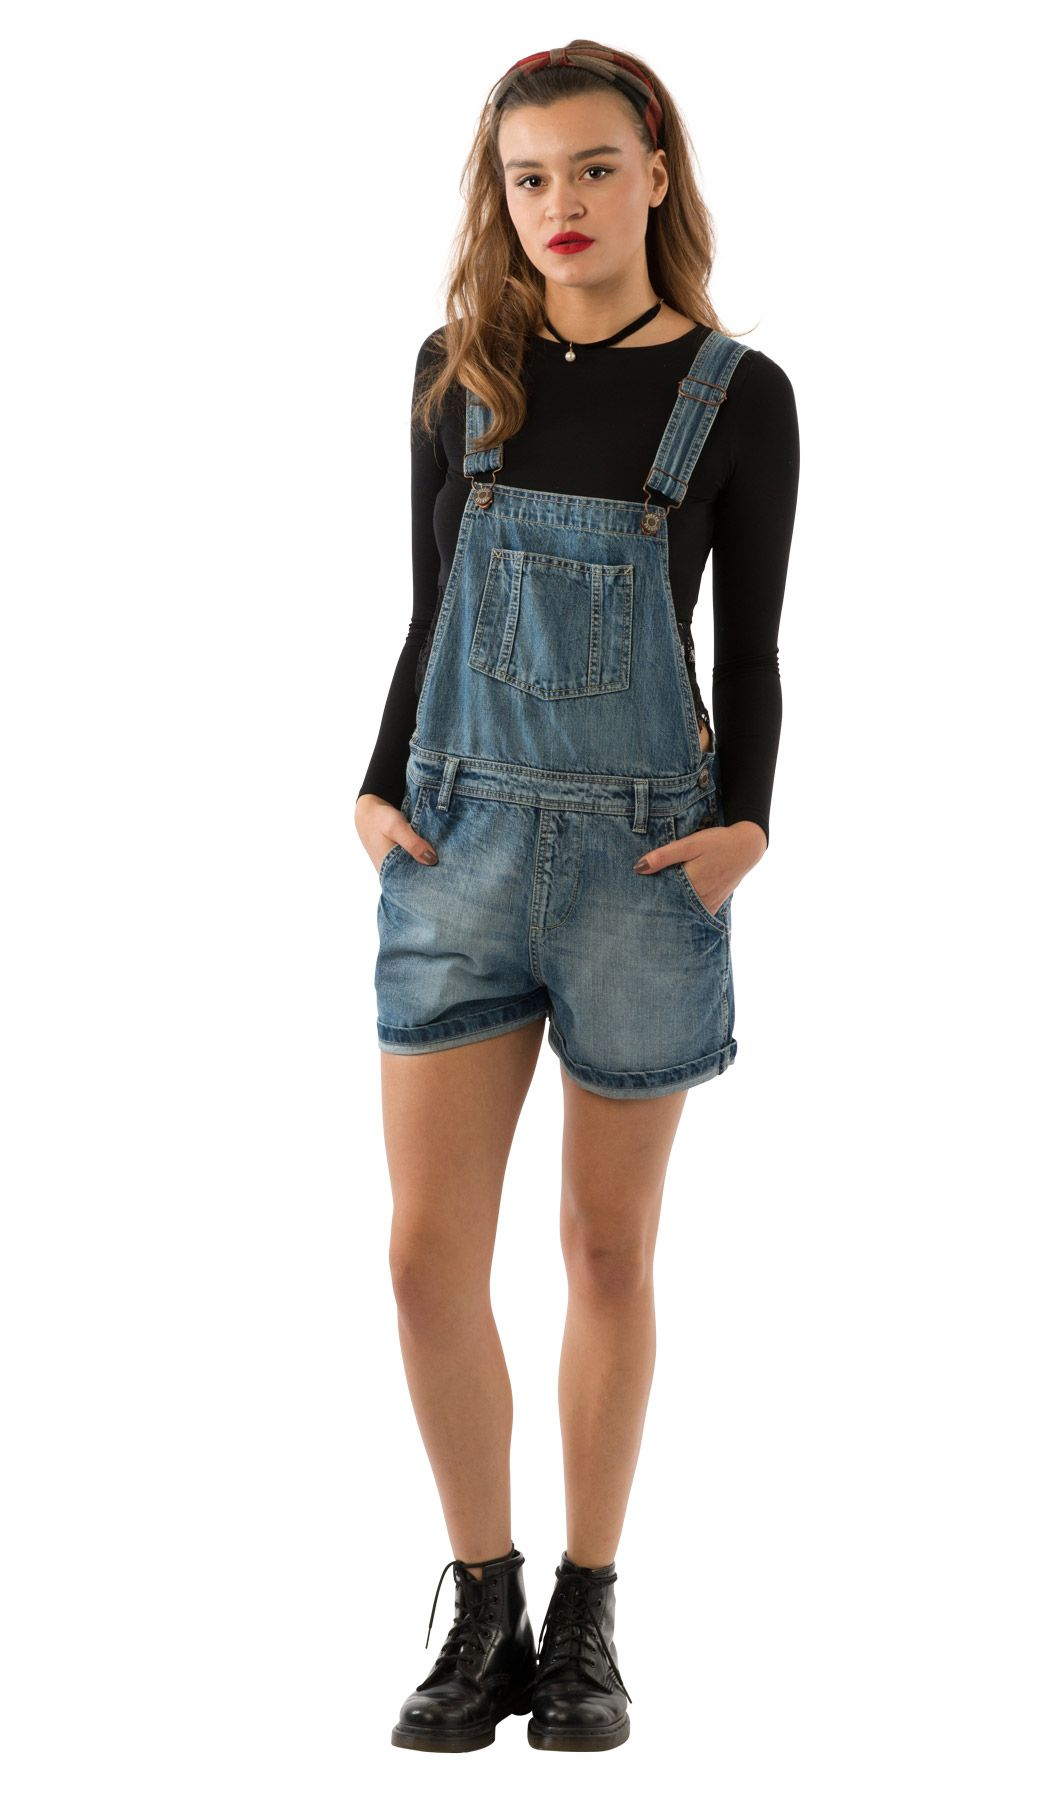 a7d97d13f3d USKEES ANNA - Relaxed Fit Stonewash Denim Dungaree Shorts.  overalls   shortalls  dungareeshorts  Uskees